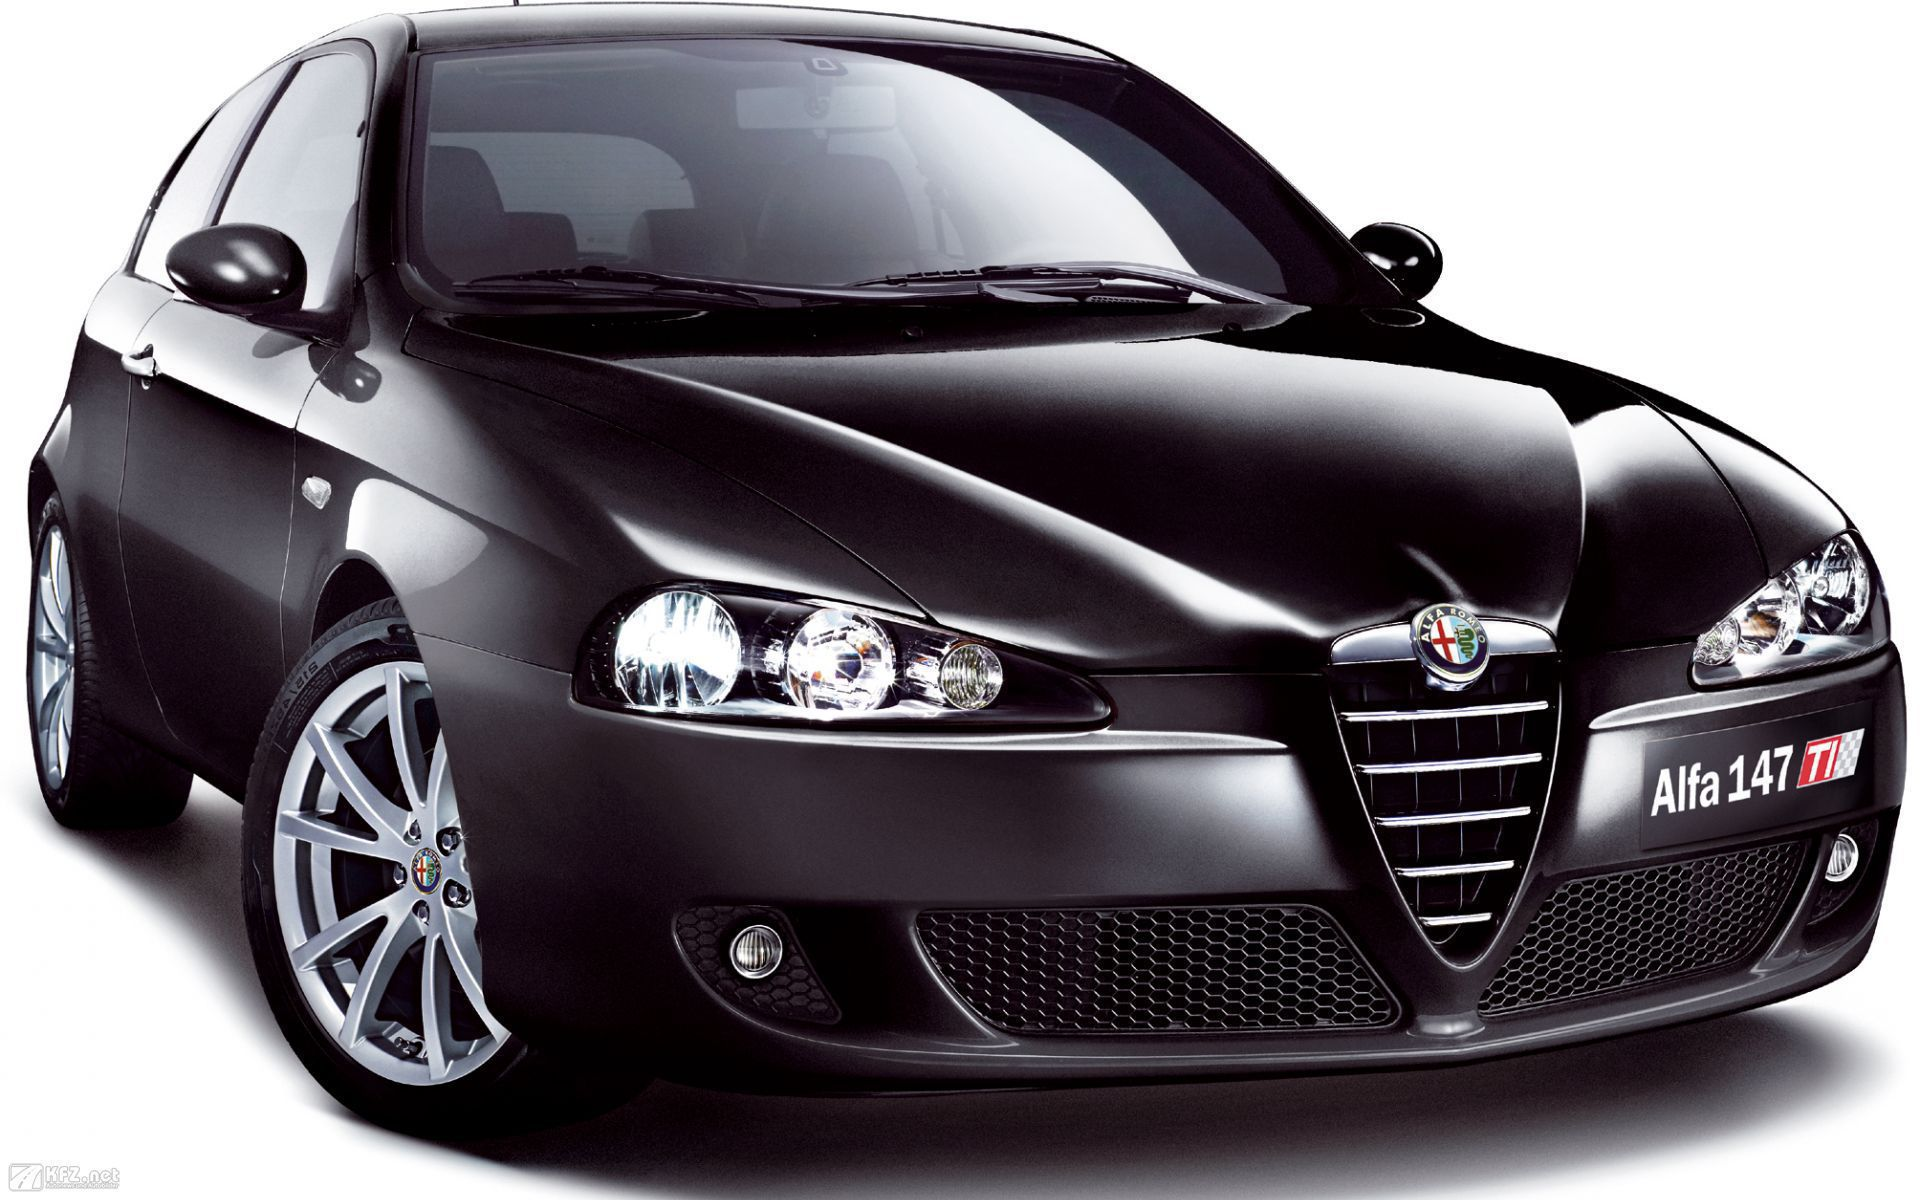 1920x1200 - Alfa Romeo 147 Wallpapers 4